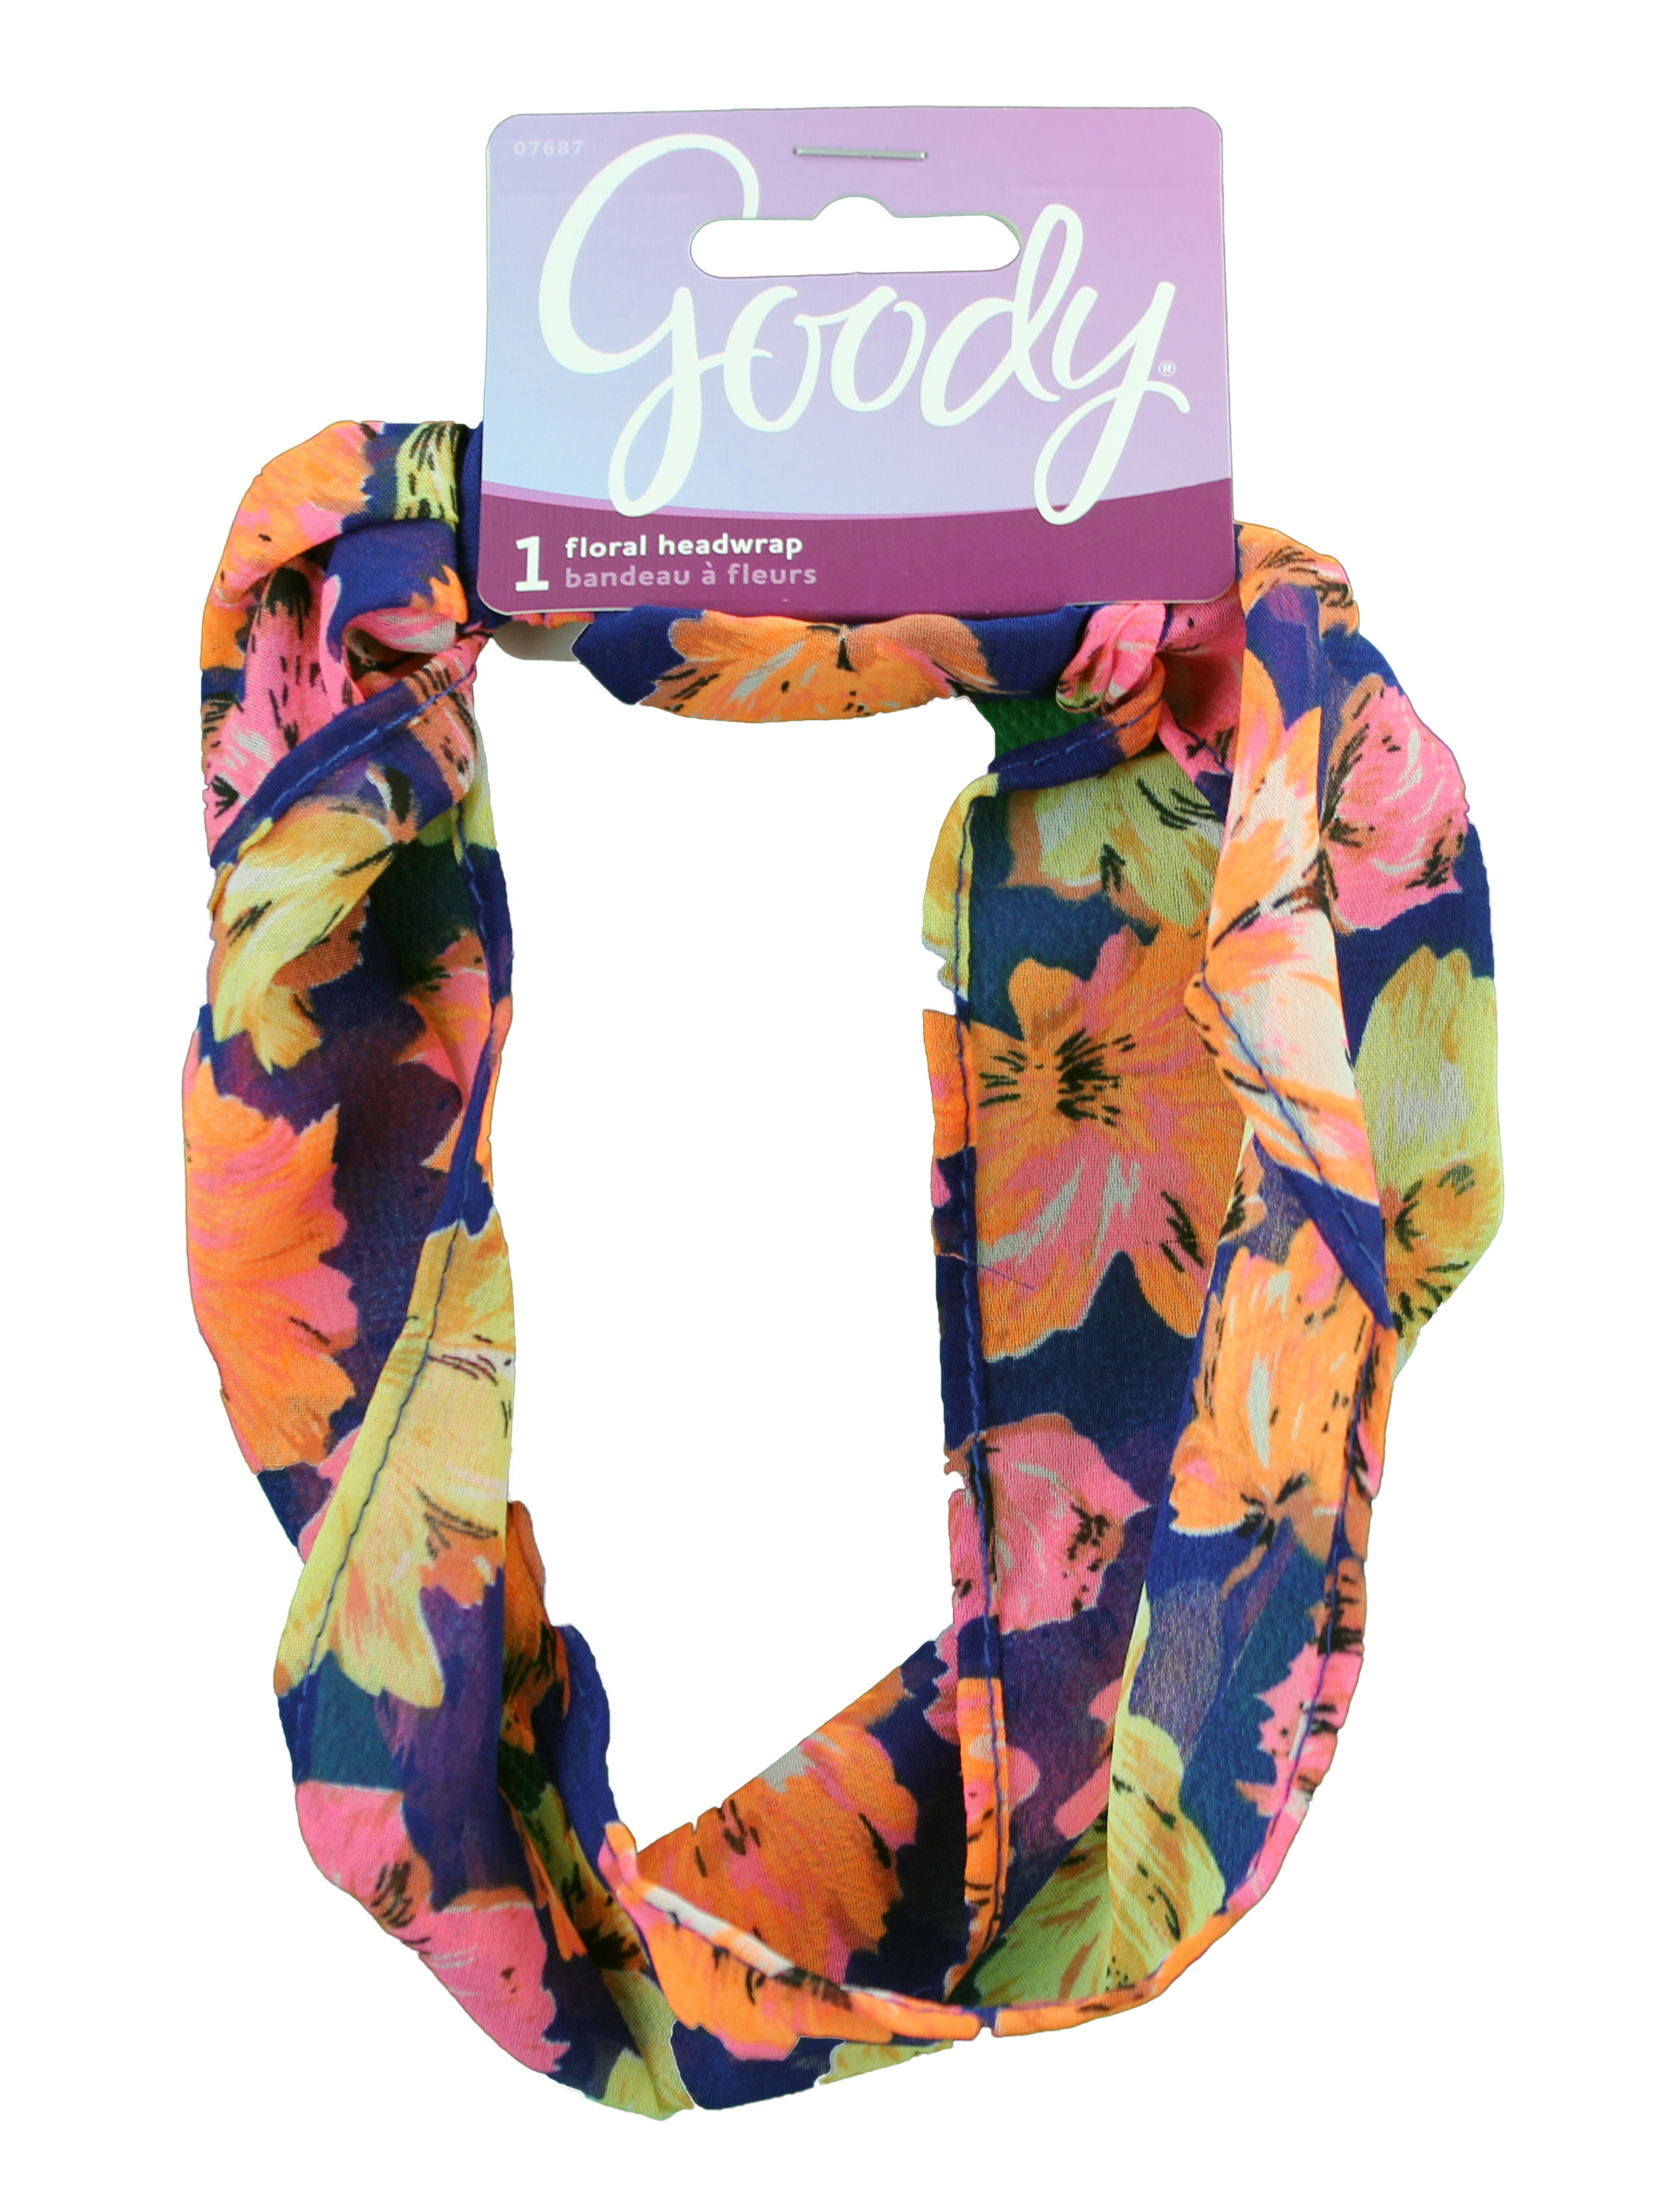 Goody Corporate Fashion Now Spring Floral Headwraps